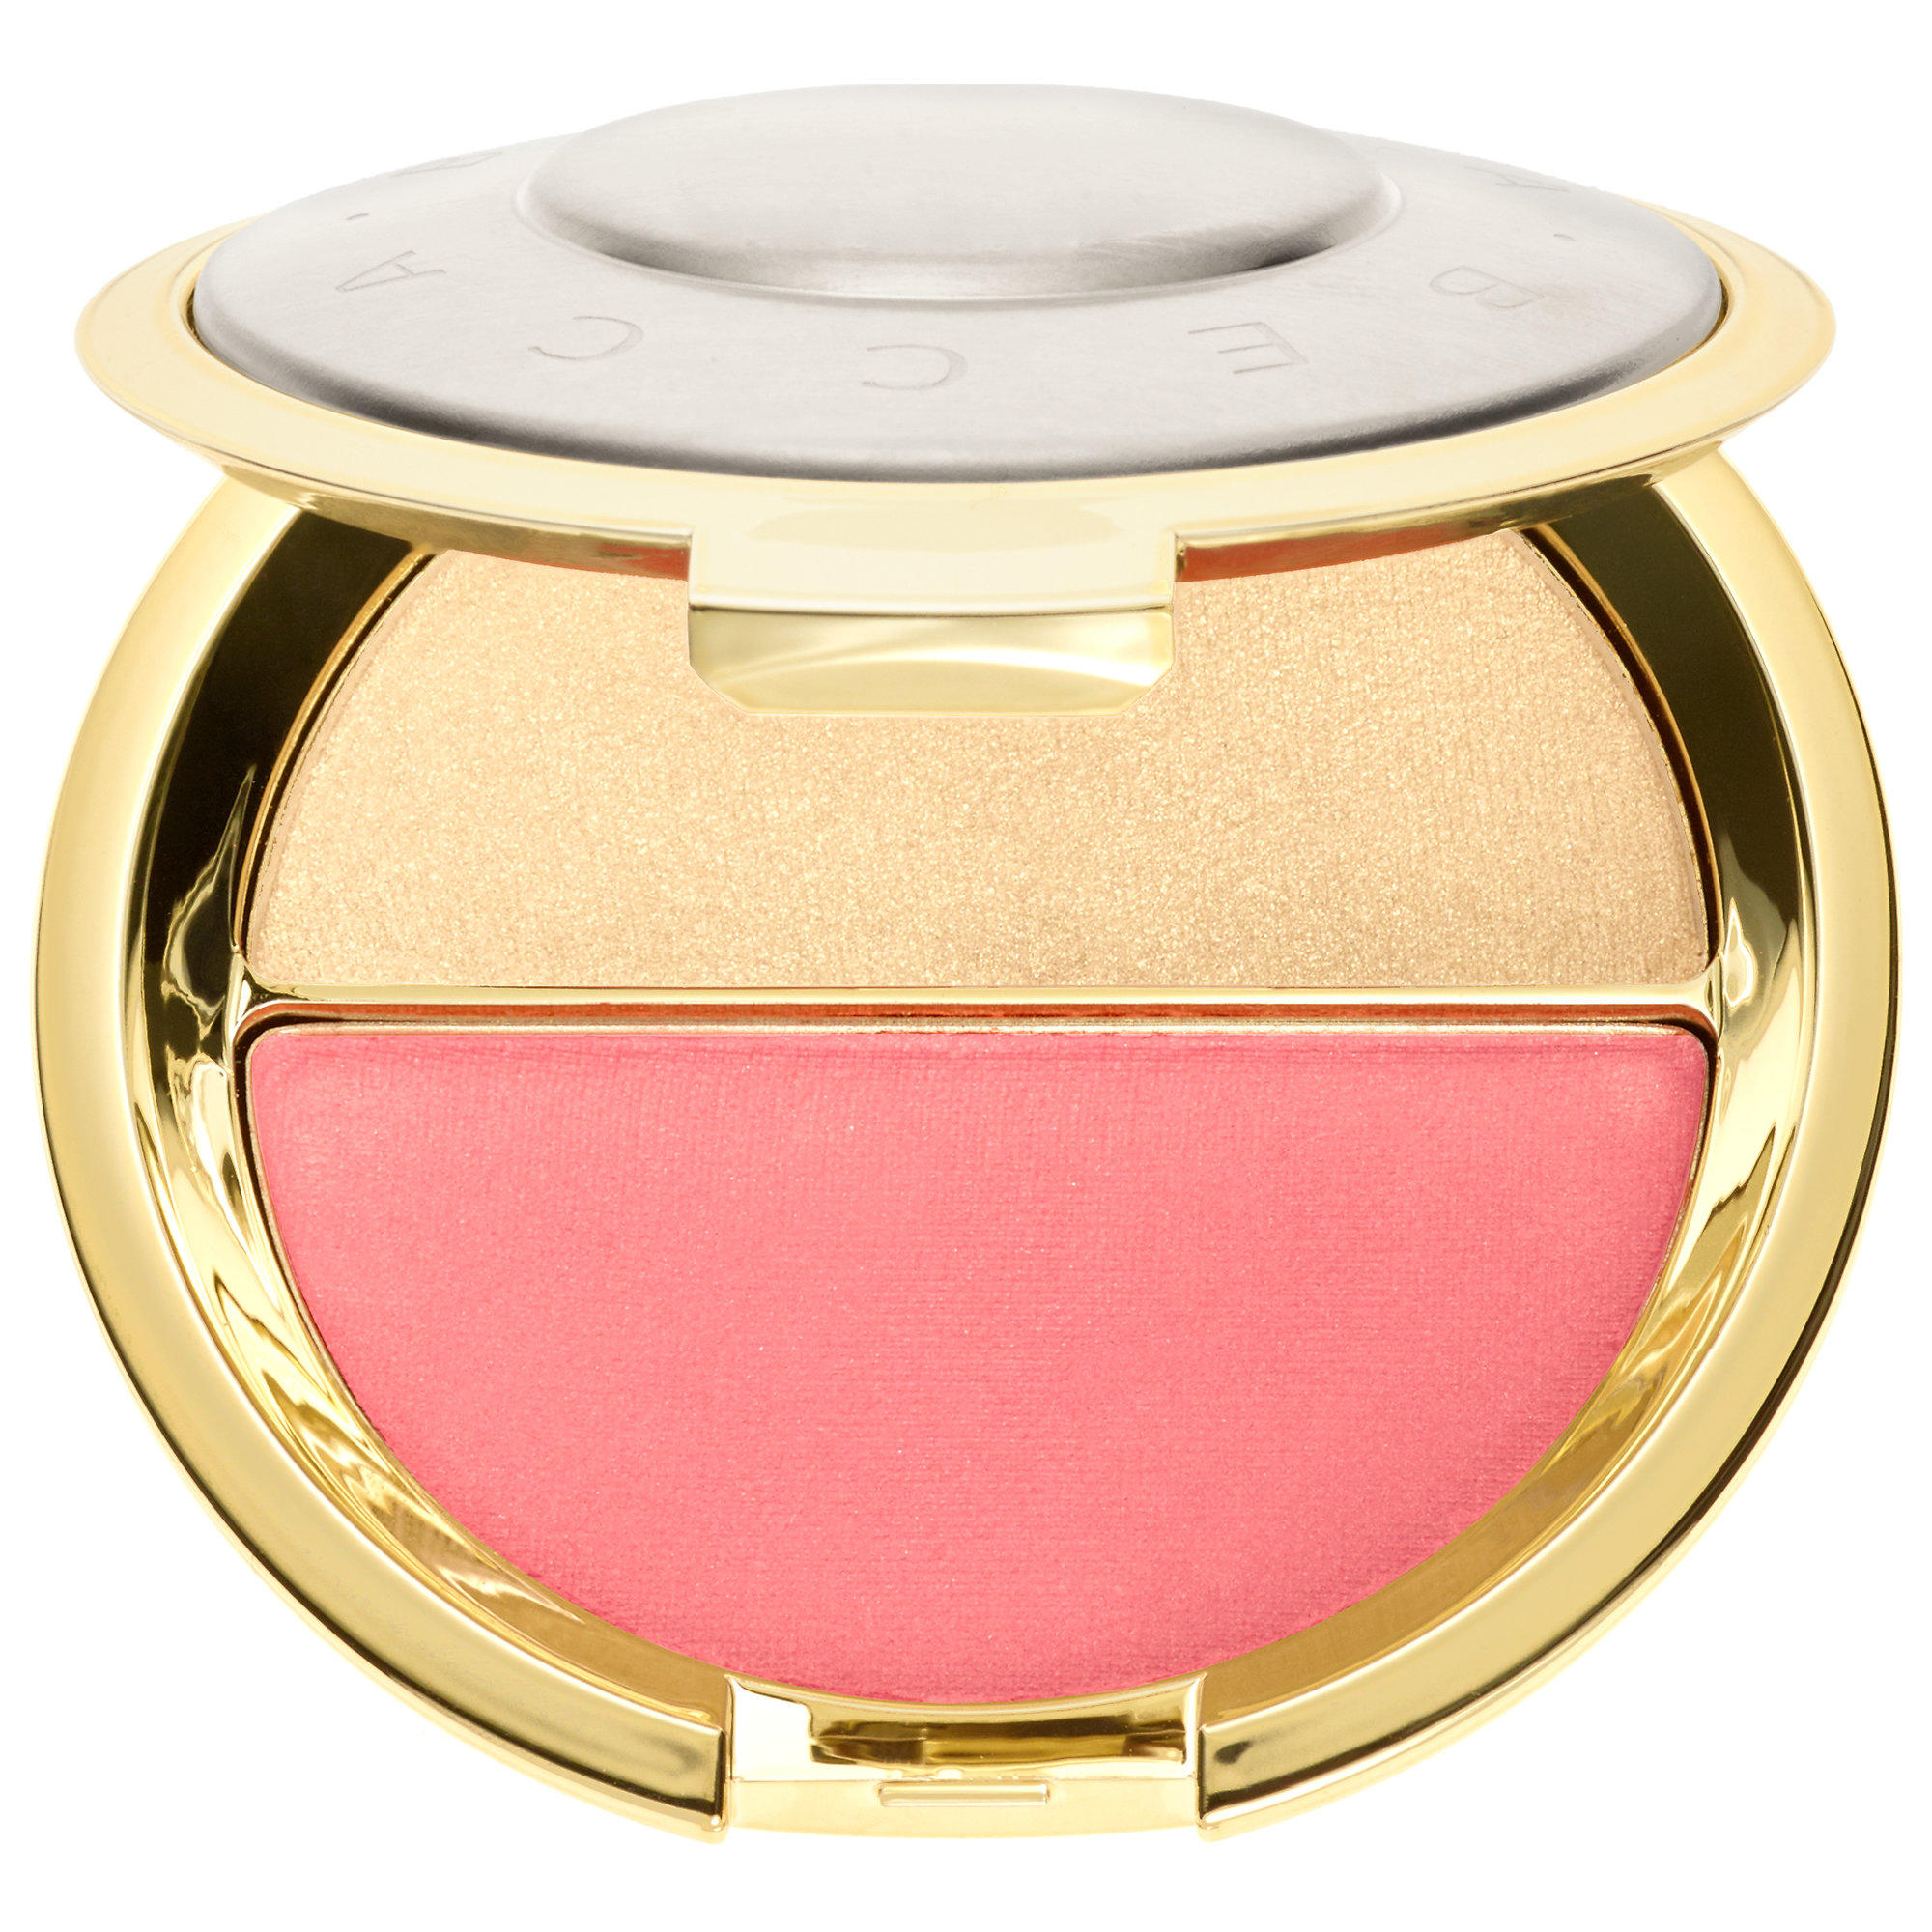 BECCA Champagne Splits Shimmering Perfector Prosecco Pop / Pamplemousse